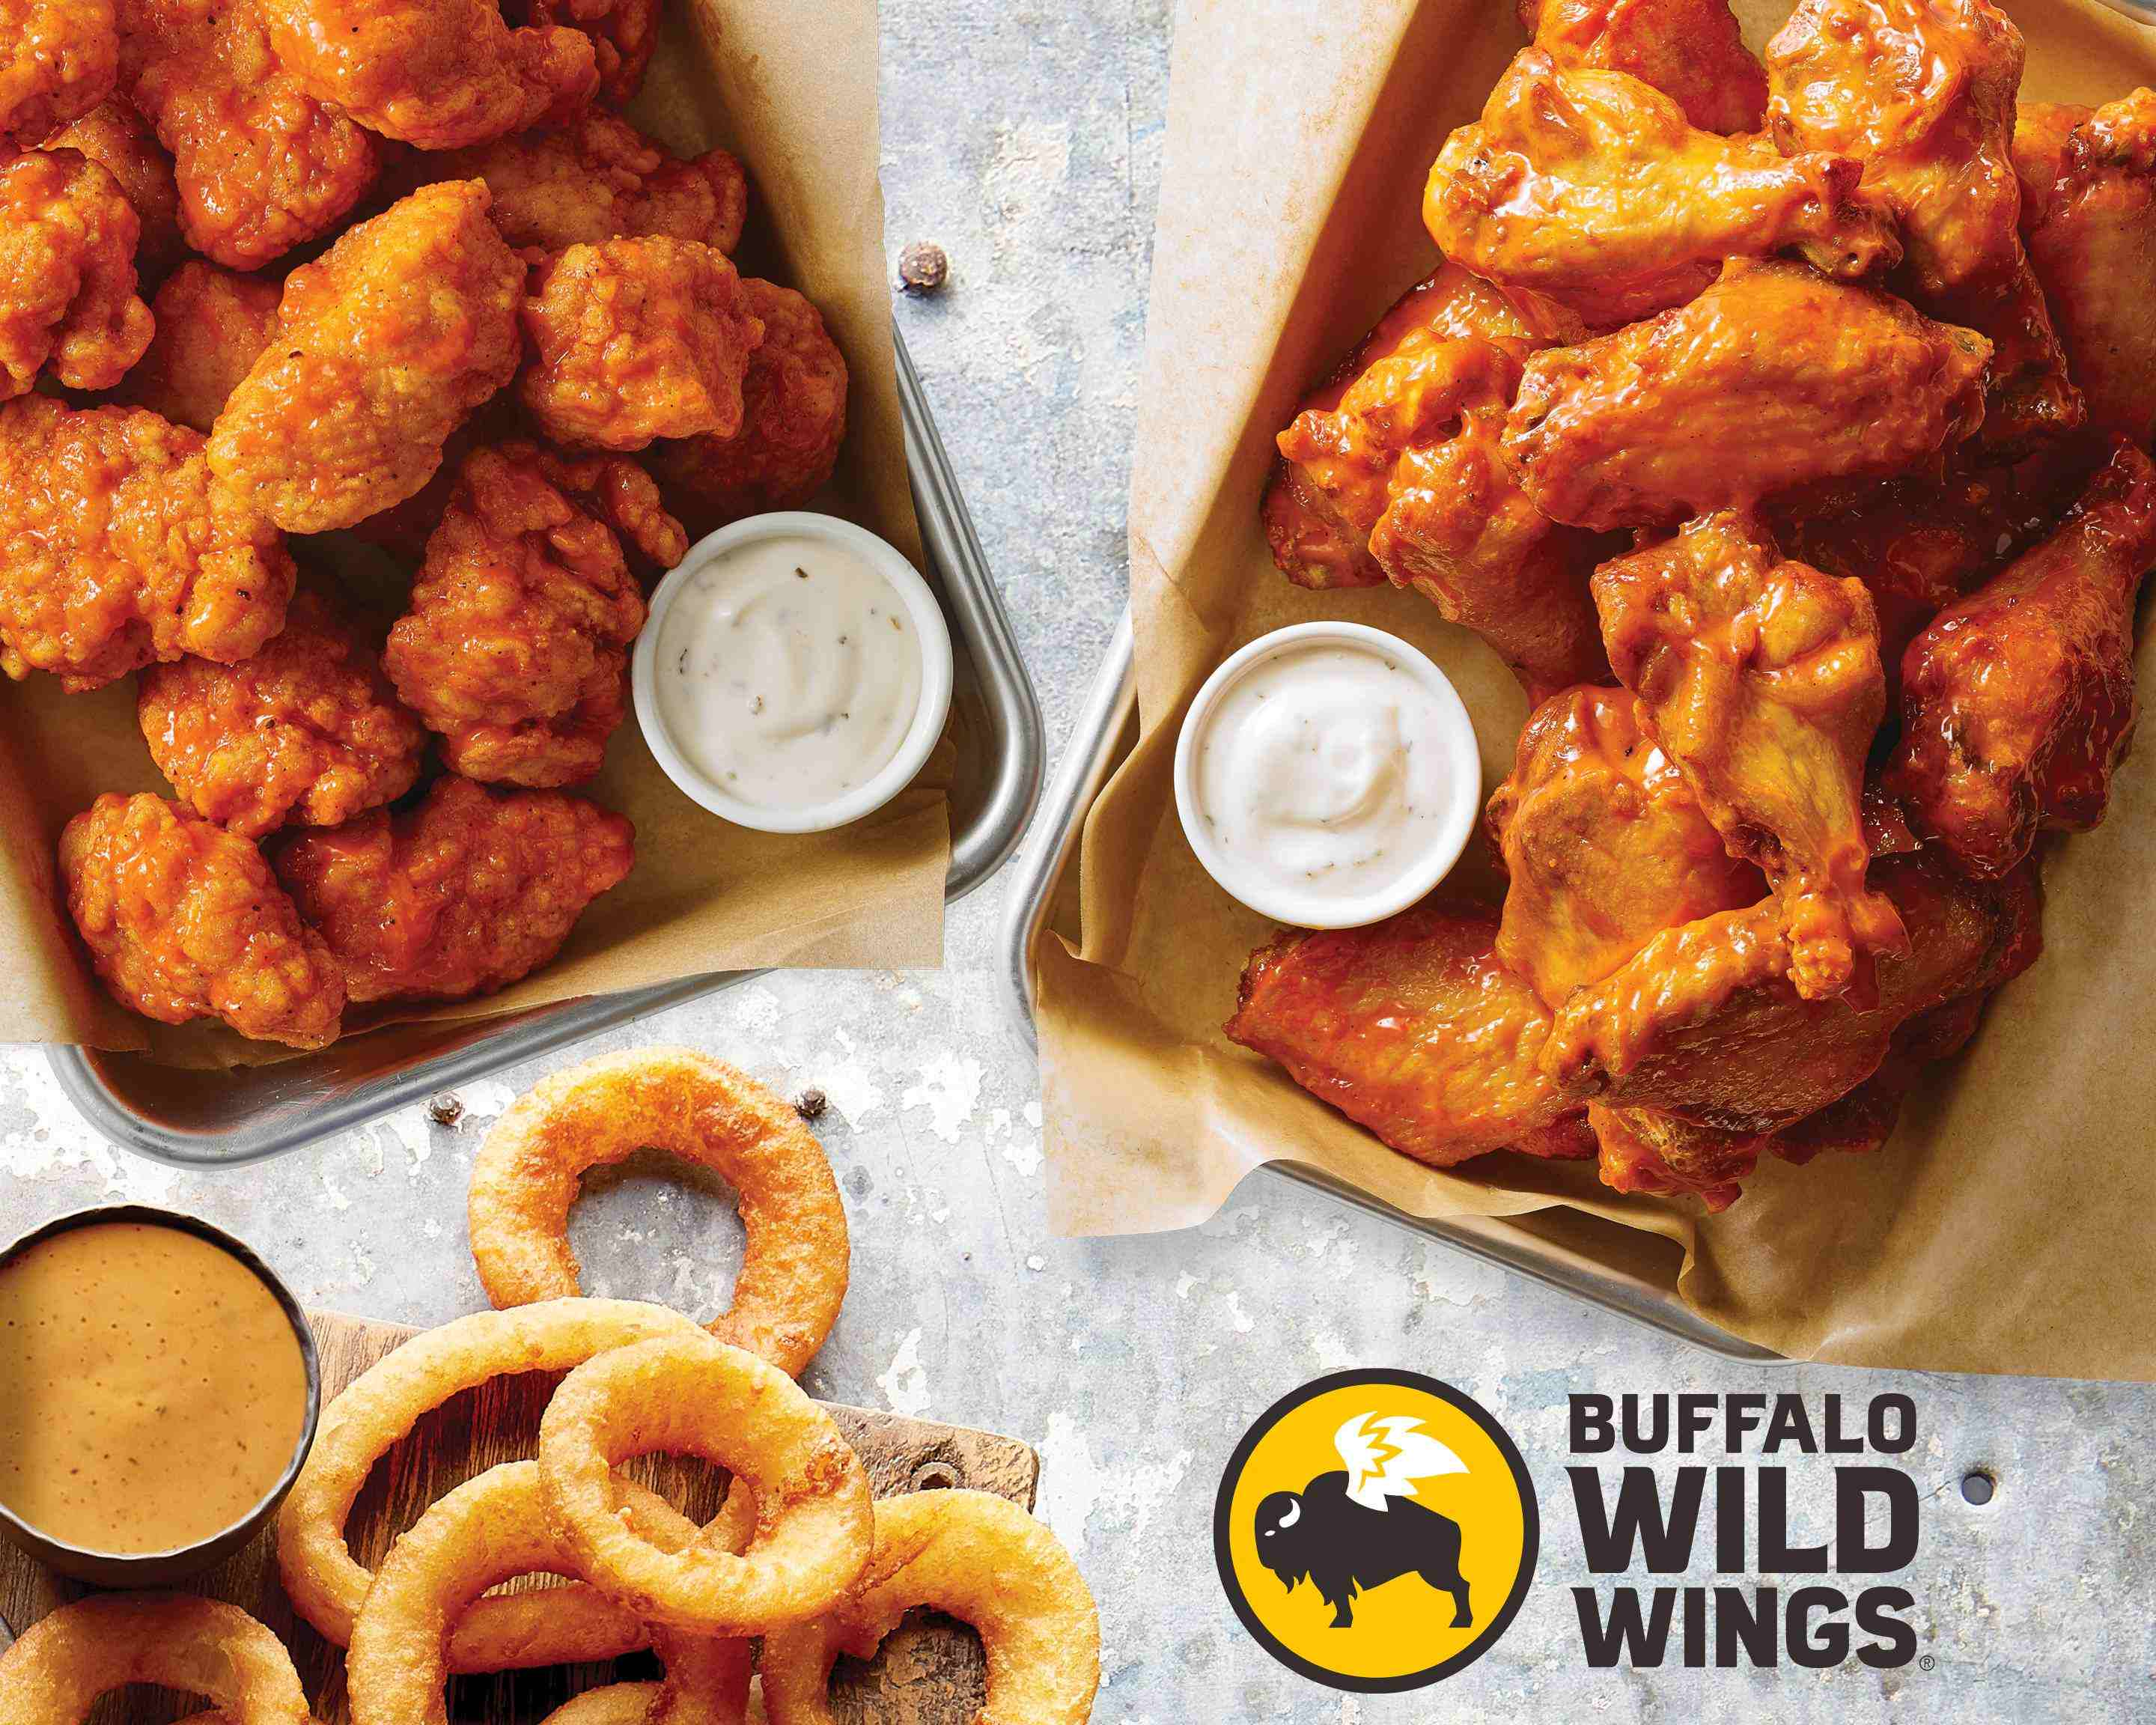 Order Buffalo Wild Wings 1080 S Broadway Ste 104 Delivery Online Lexington Menu Prices Uber Eats